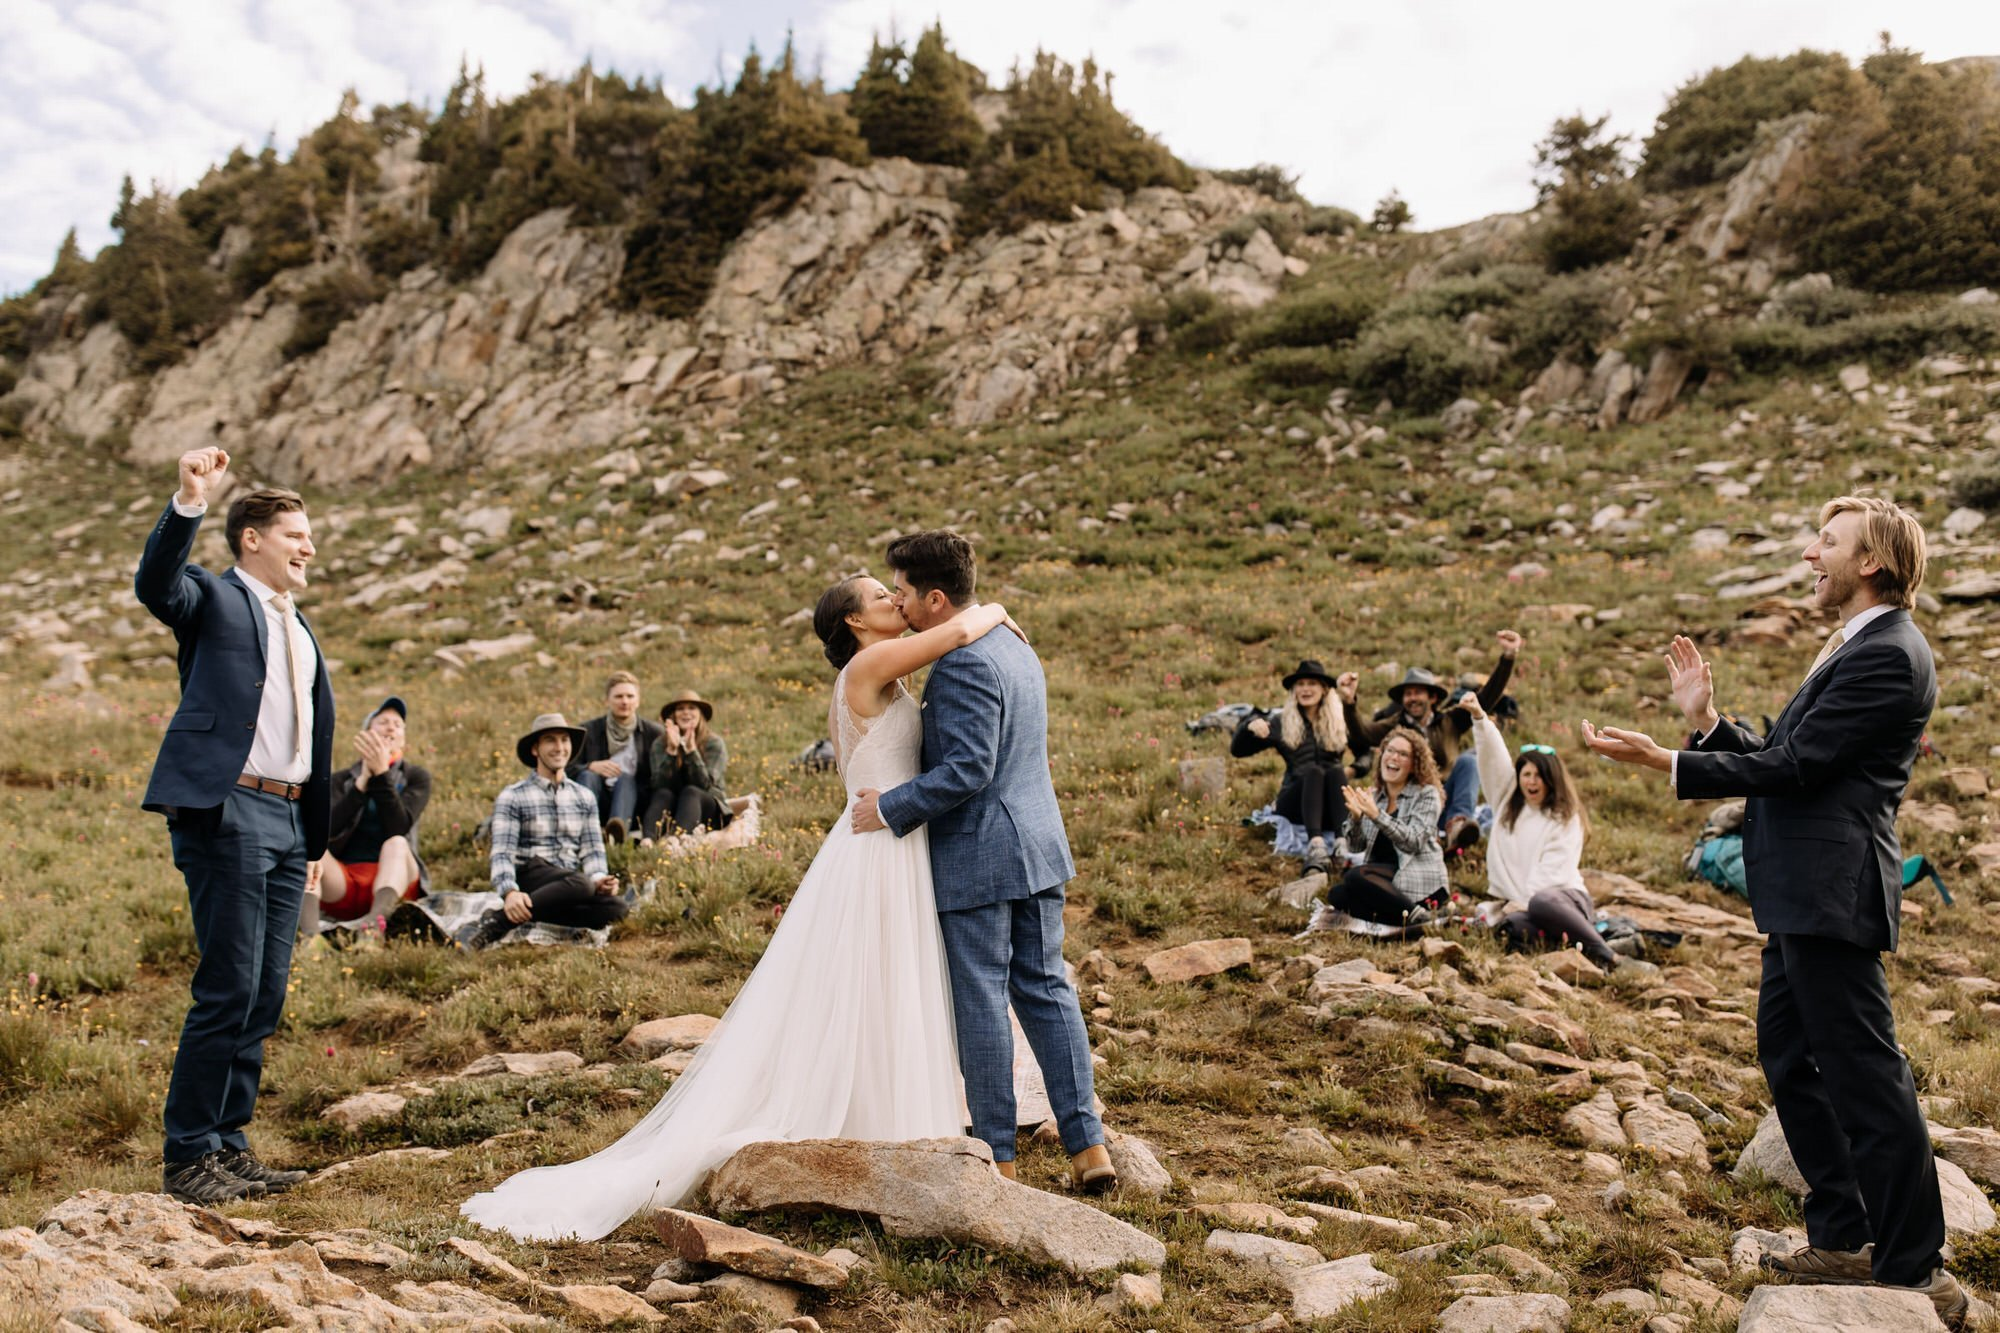 Telluride wedding ceremony in Colorado with family and friends